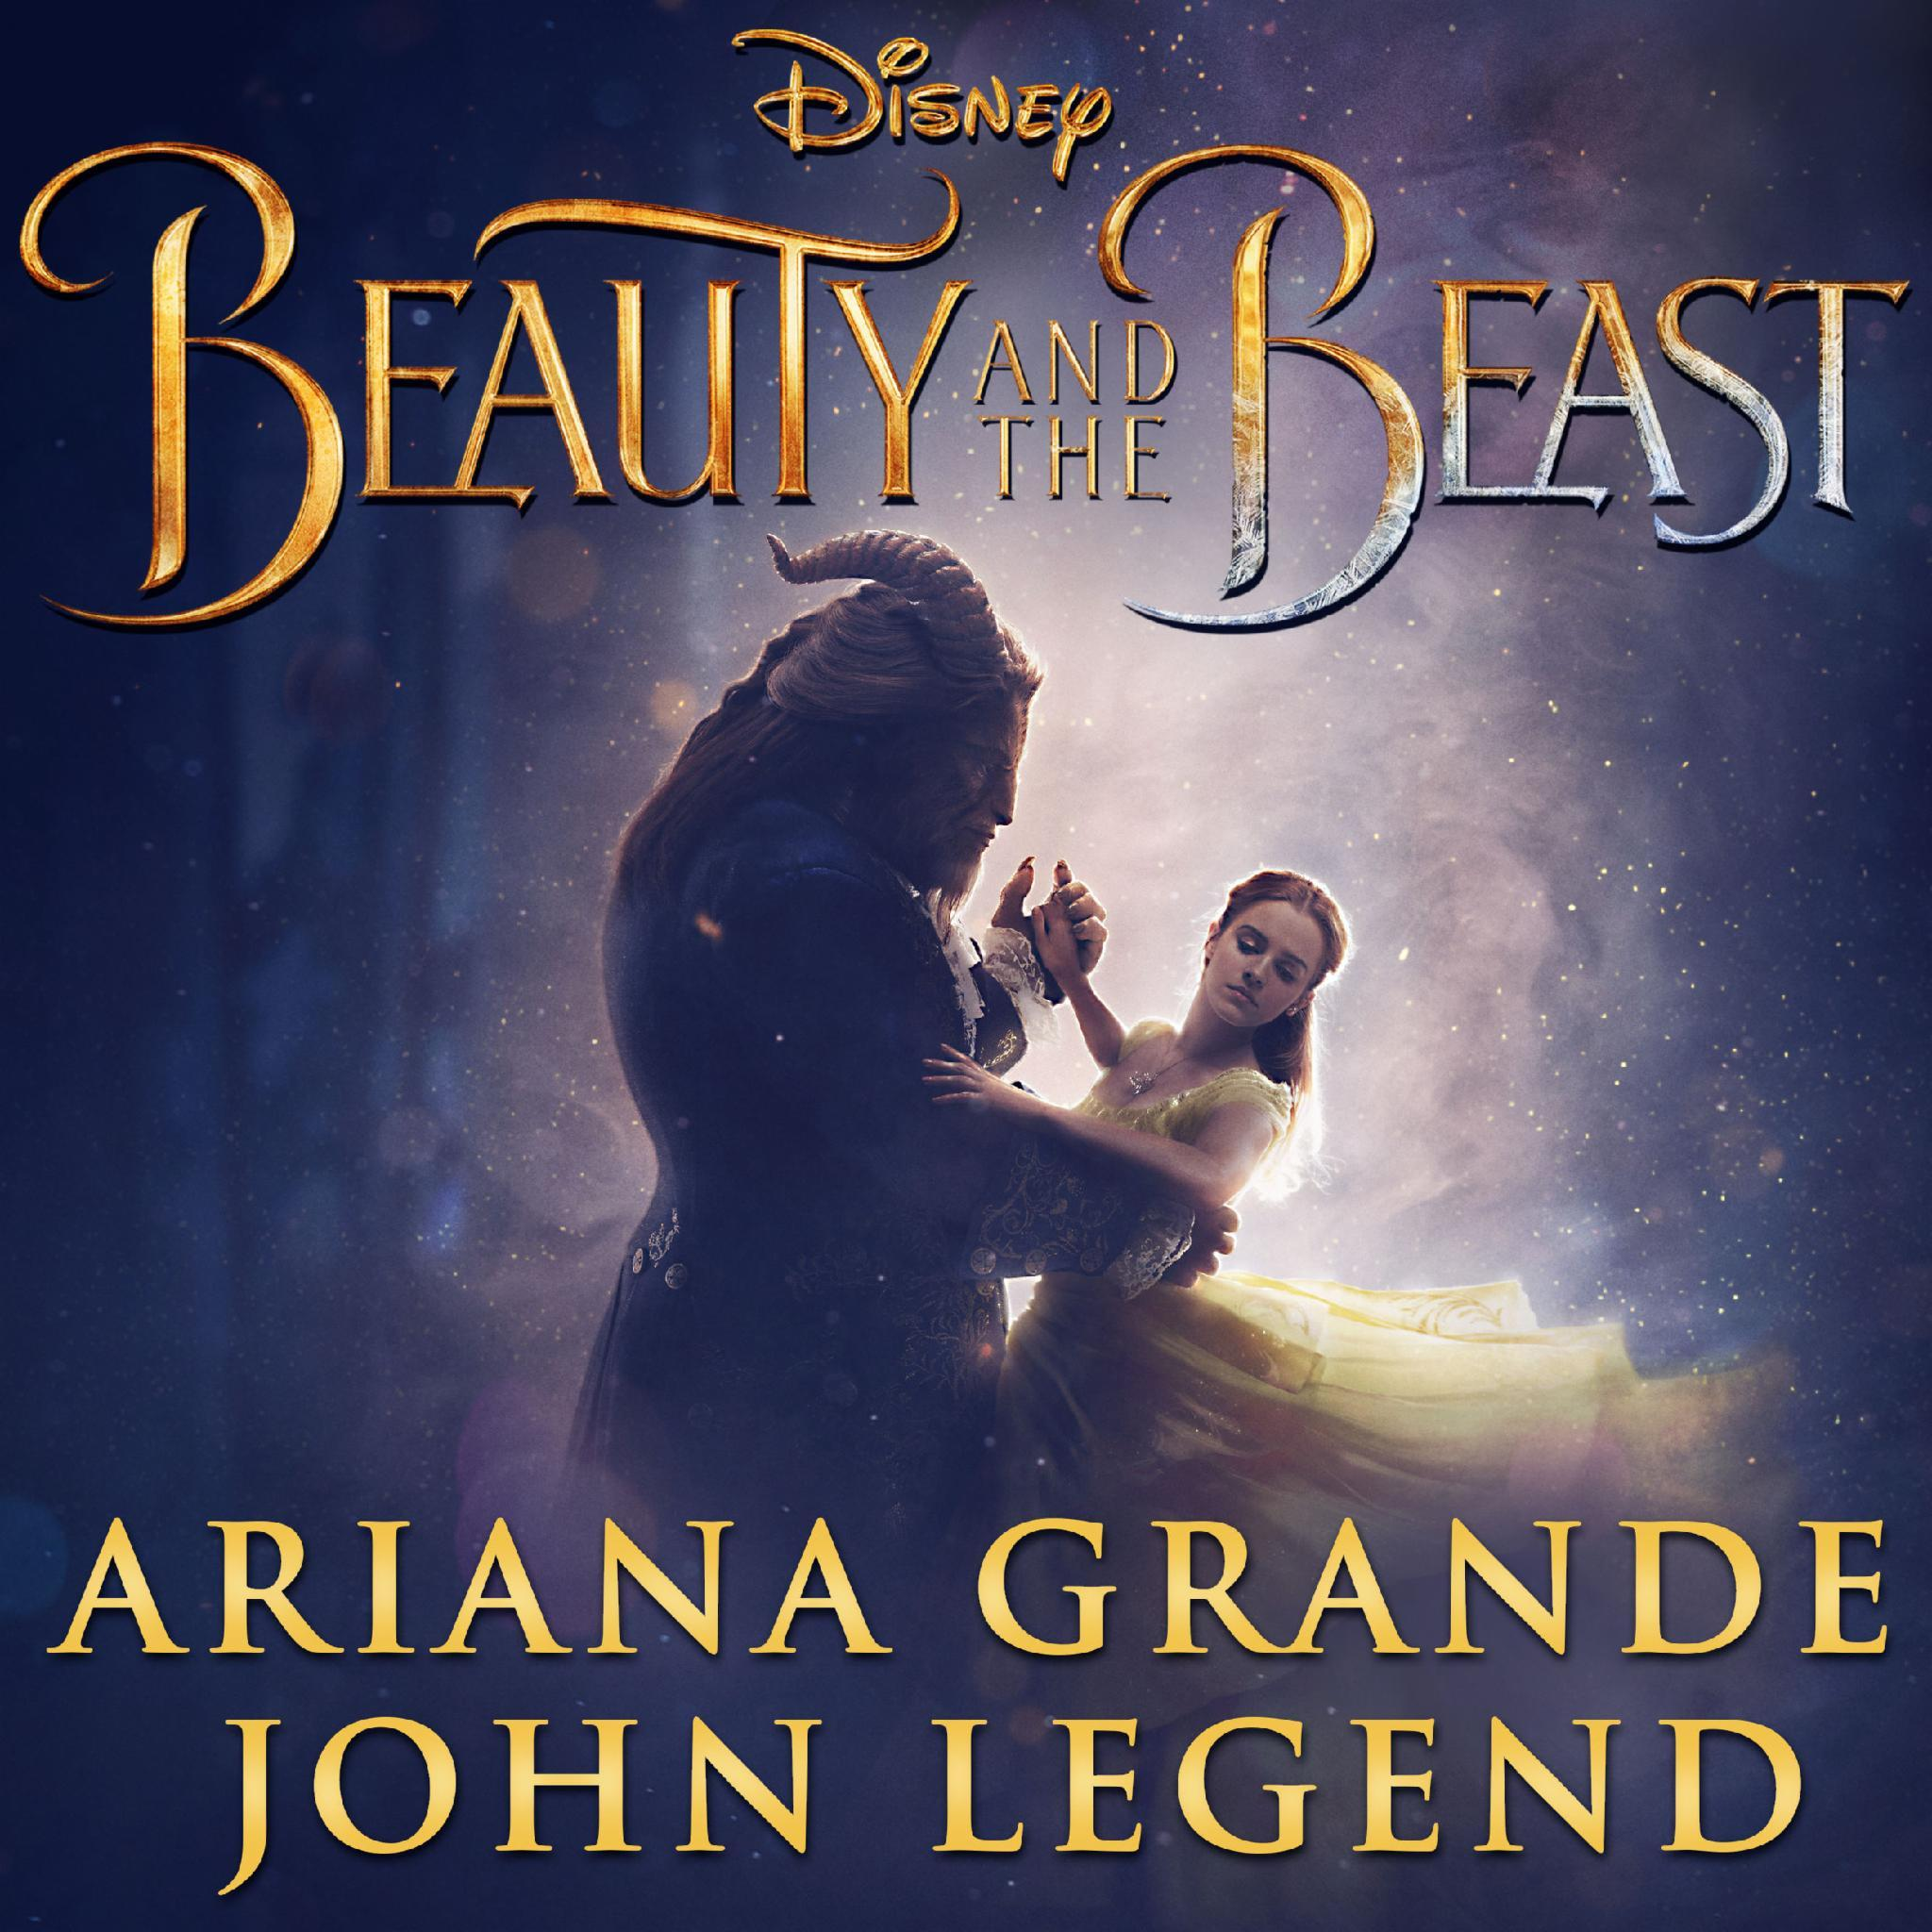 Beauty and the Beast by, Ariana Grande & John Legend